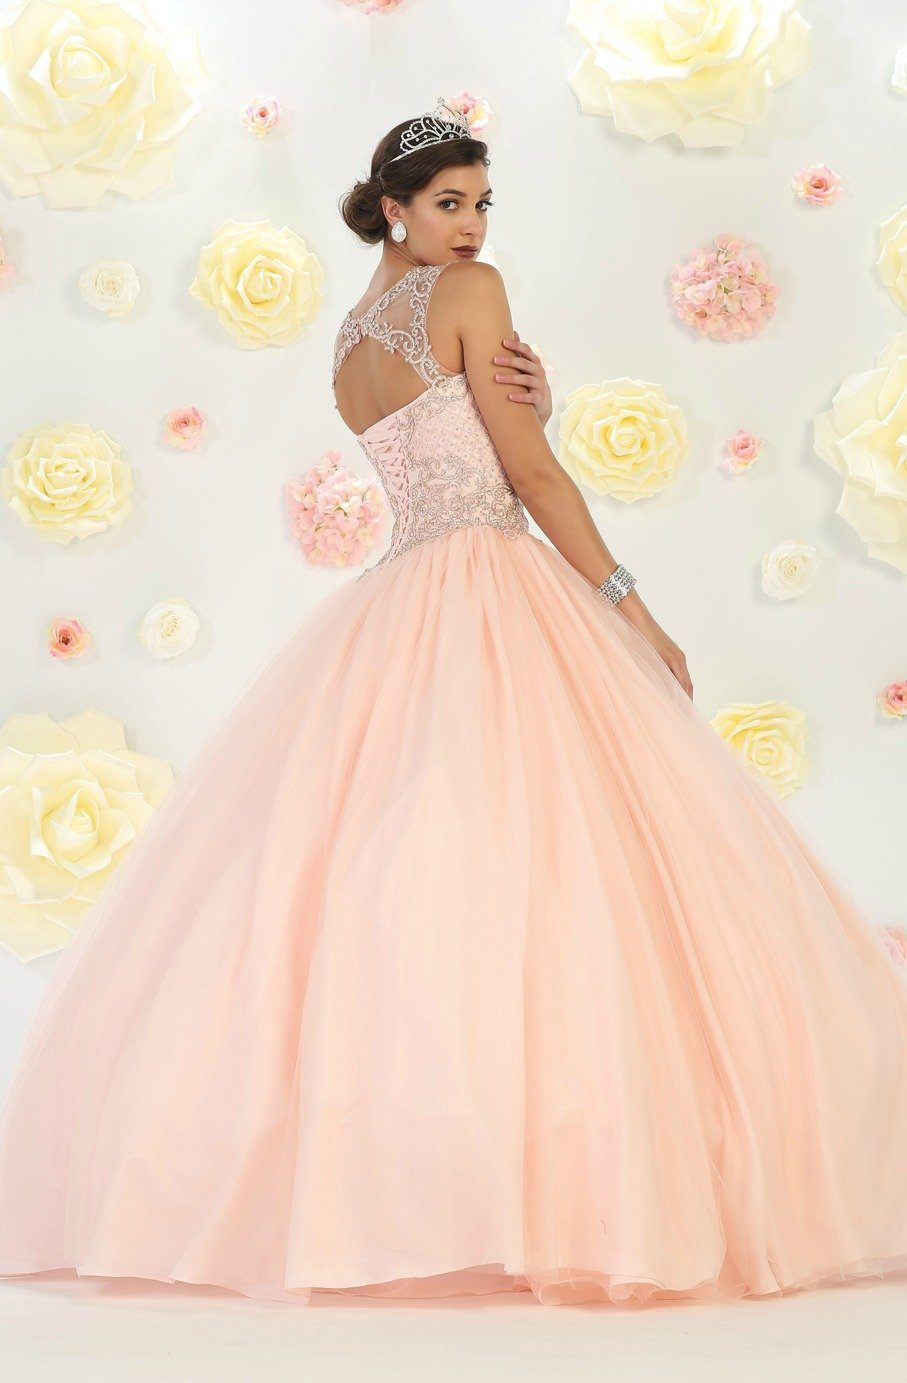 * Long High Neck Illusion Blush Ball Gown